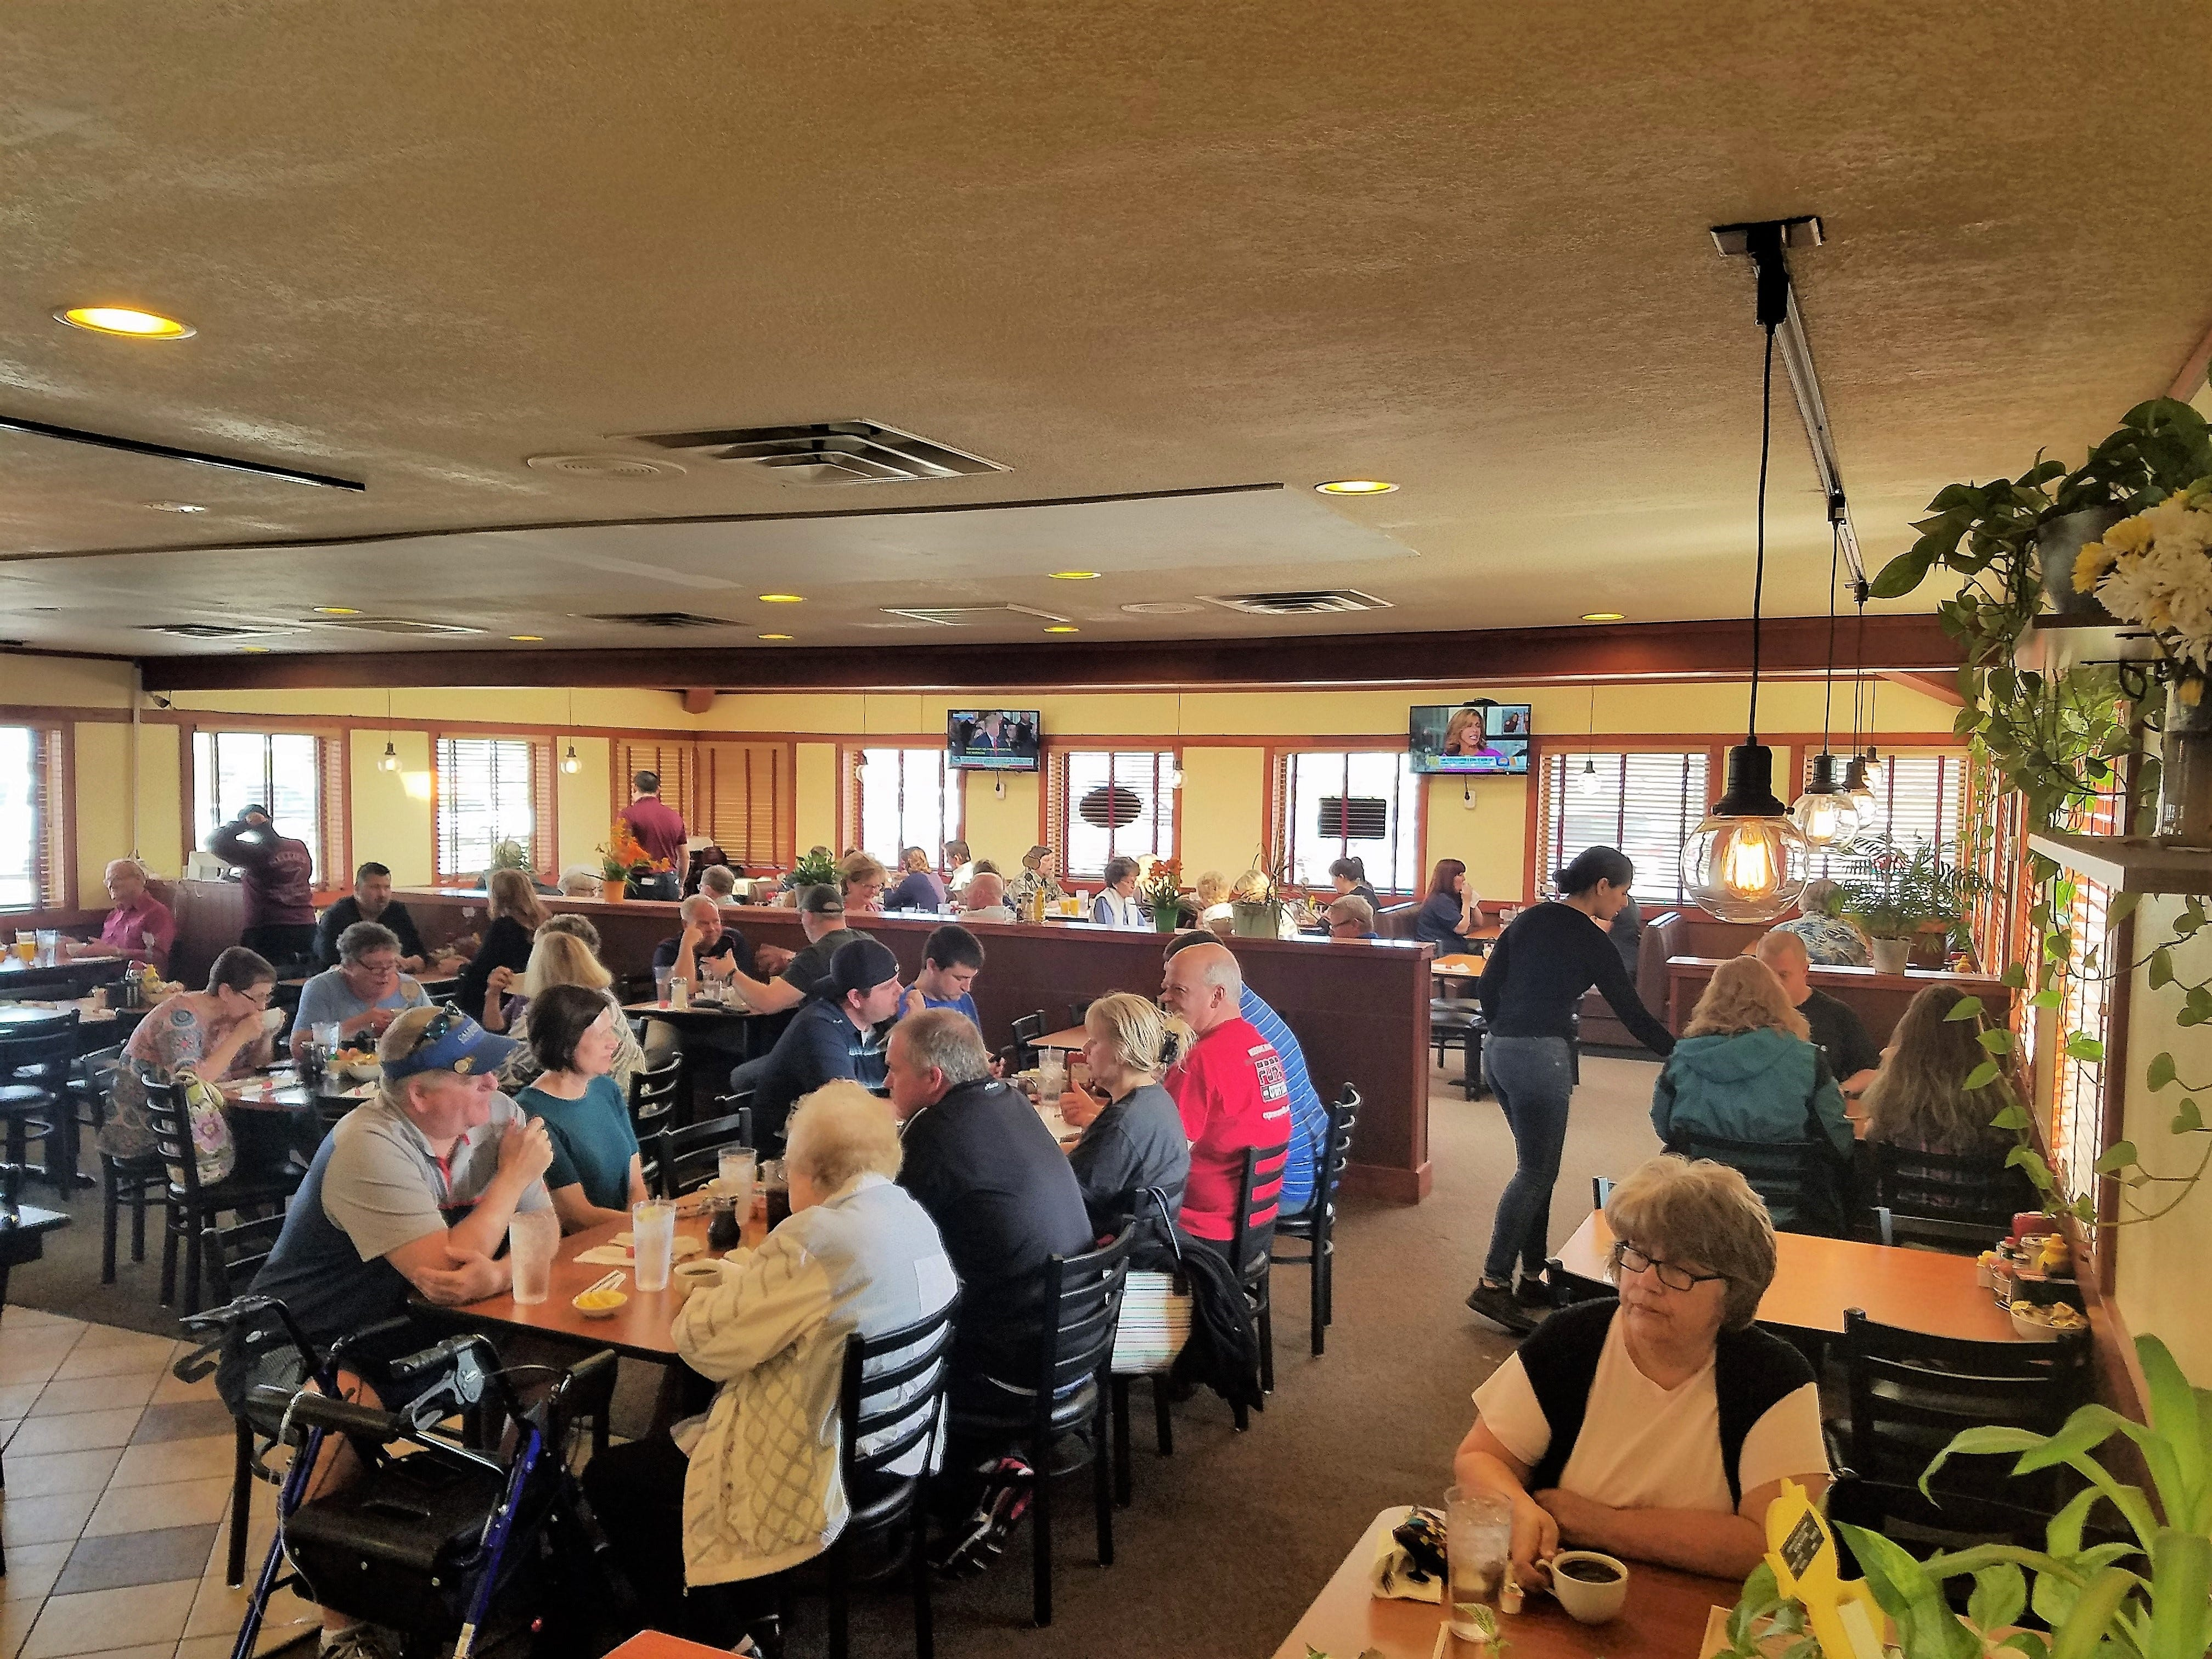 """The saying goes """"the proof is in the parking lot,"""" and Nellie's Restaurant stays busy. New evening hours give diners even more chances to enjoy."""